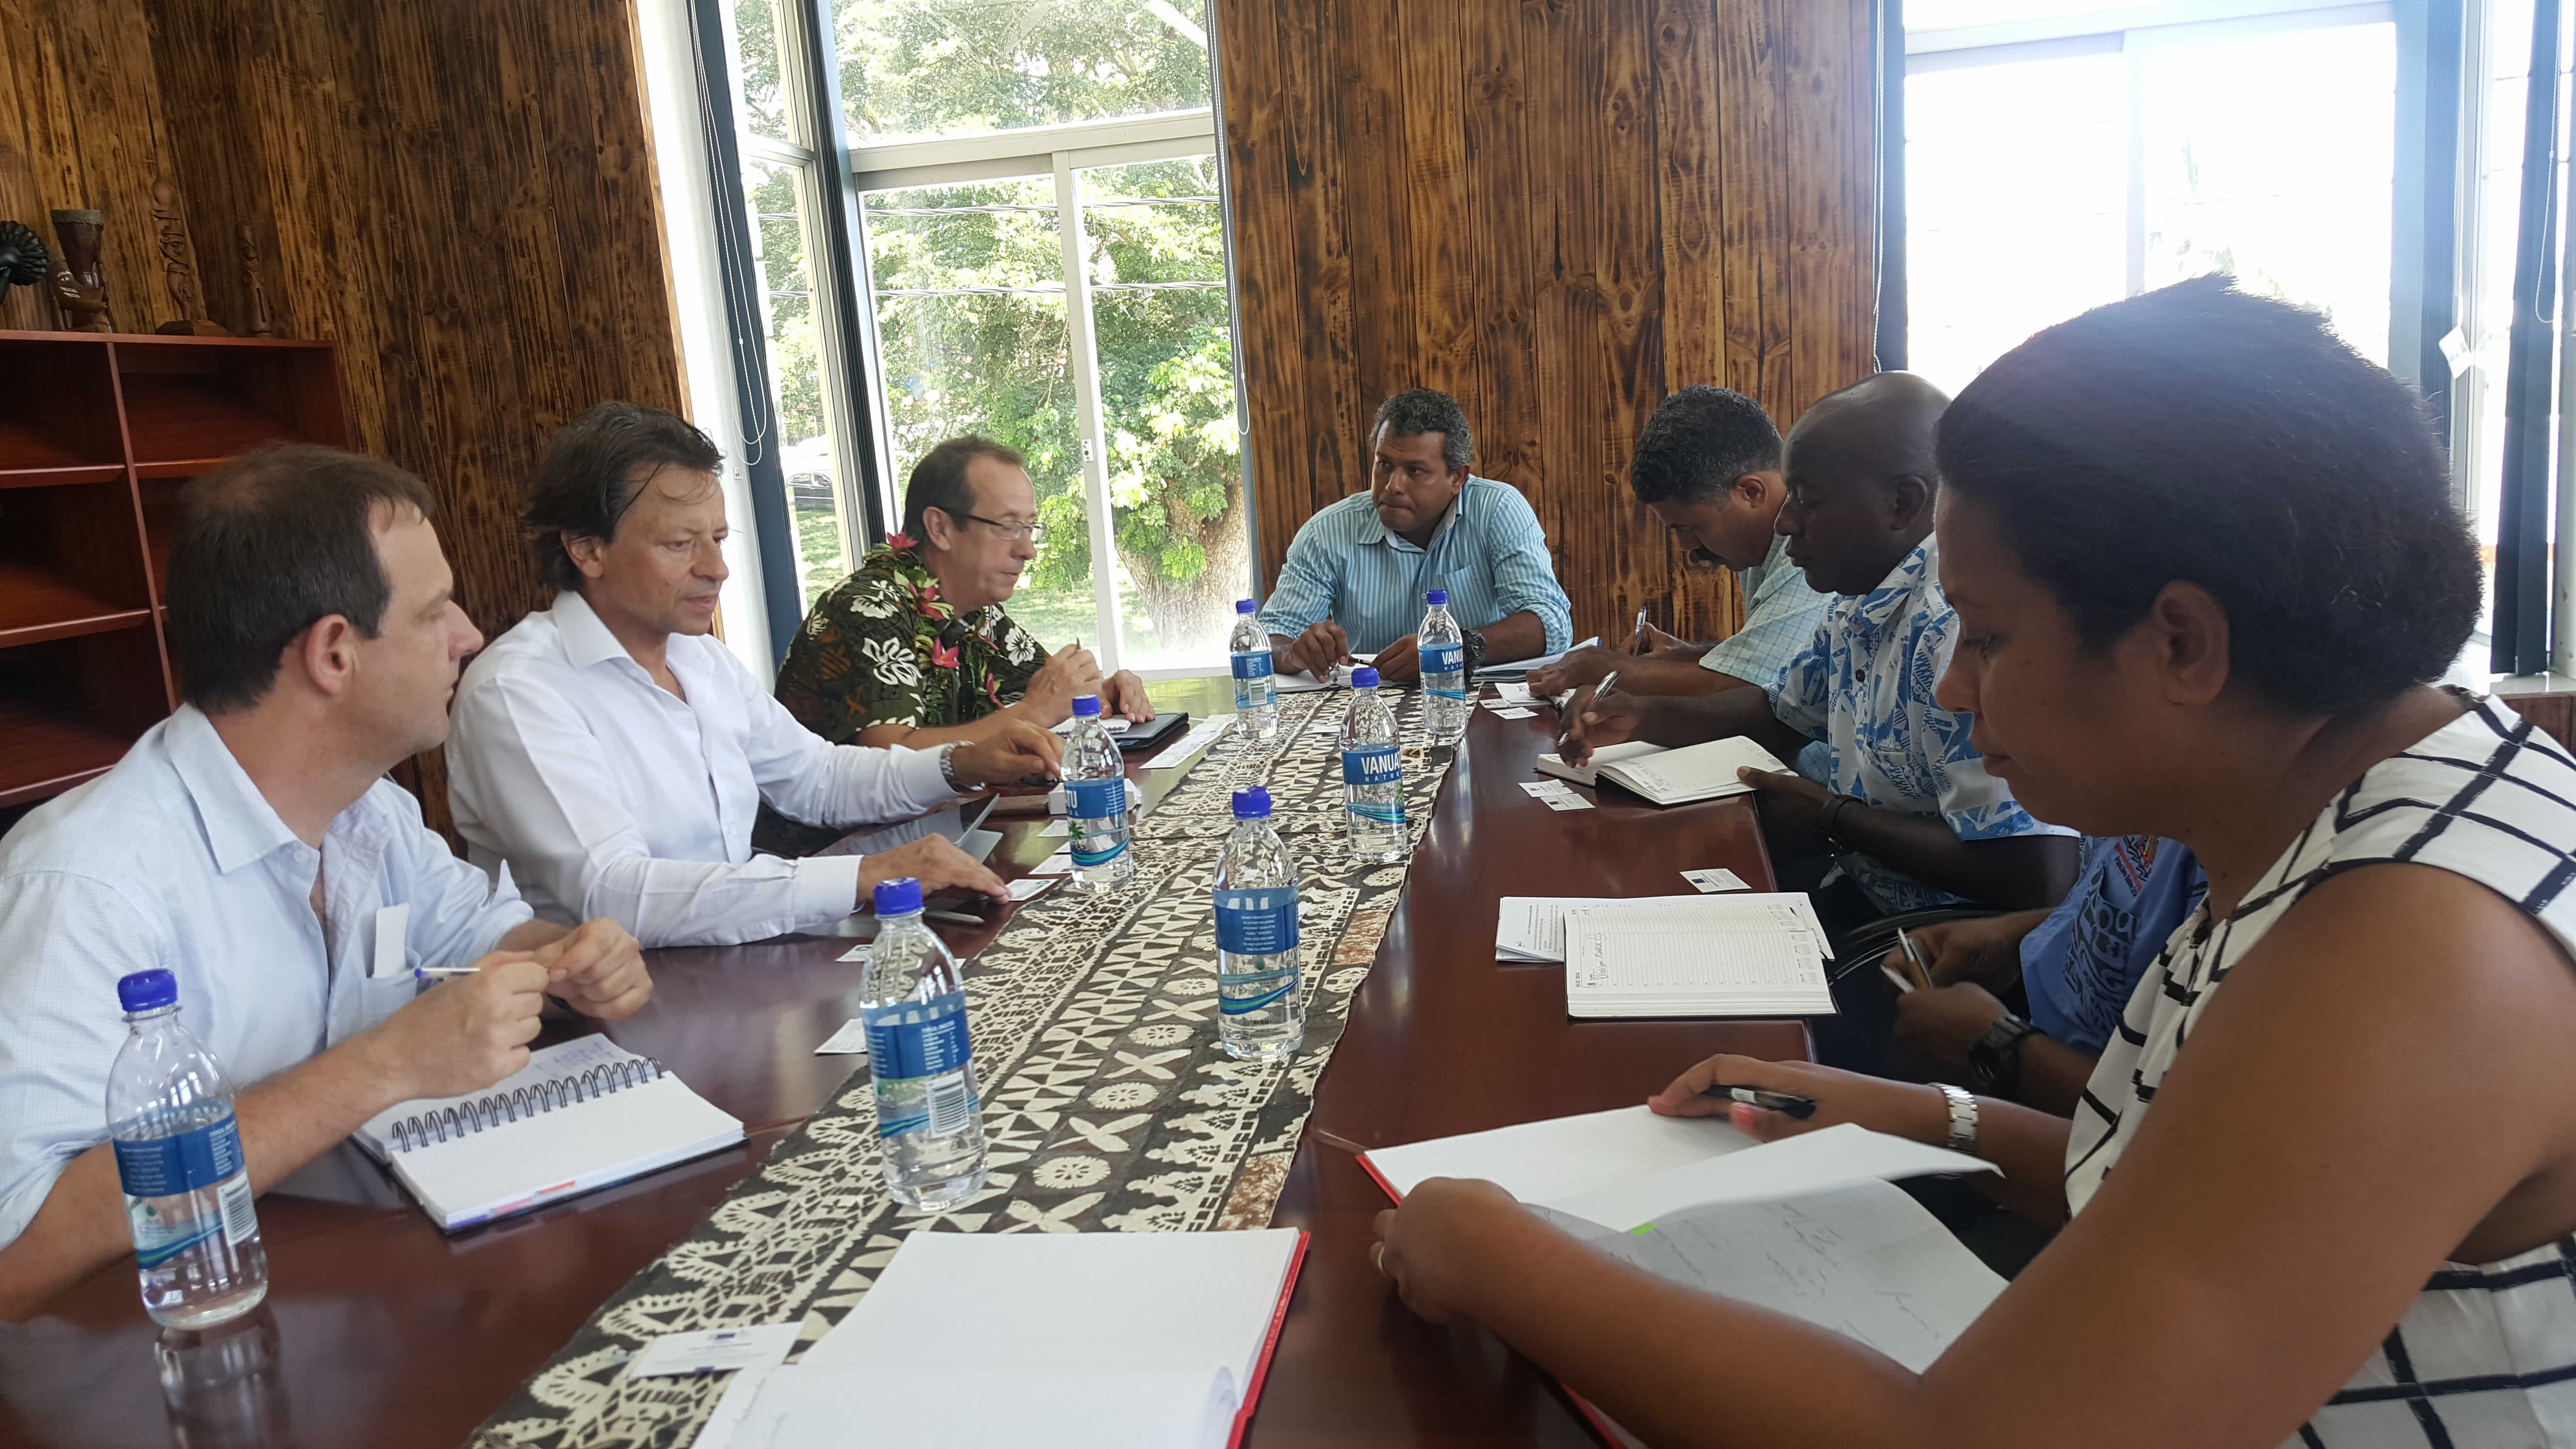 16 March 2016 - EU Ambassador to the Pacific Visit 1